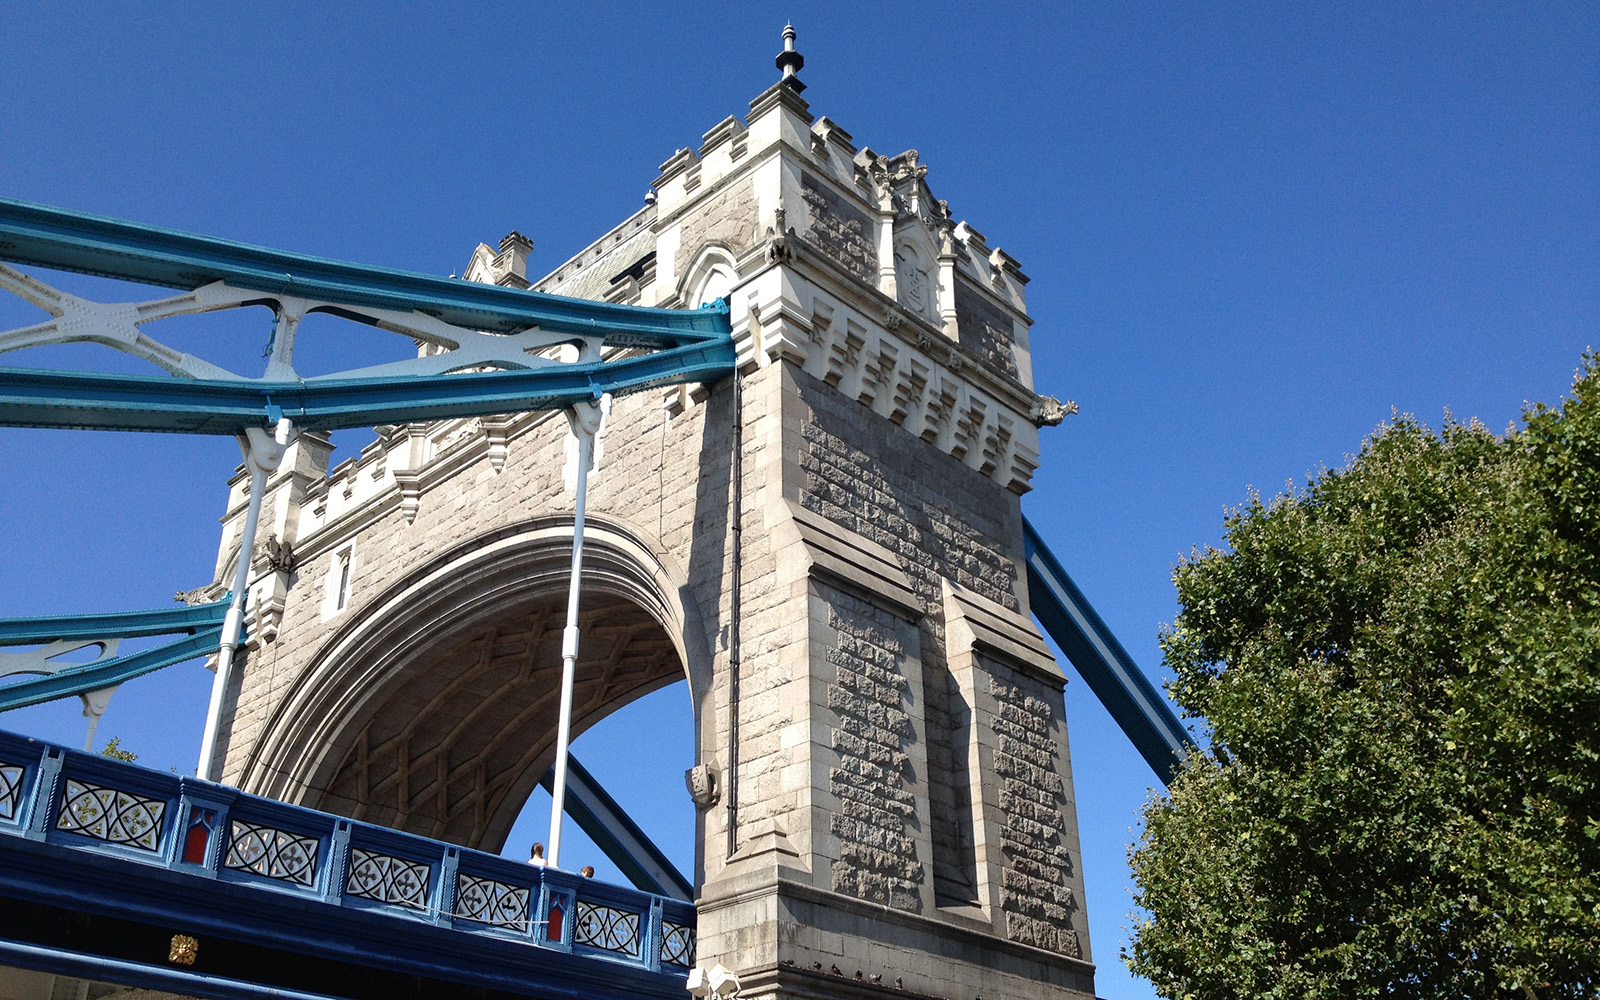 Tower Bridge 10 September 2015